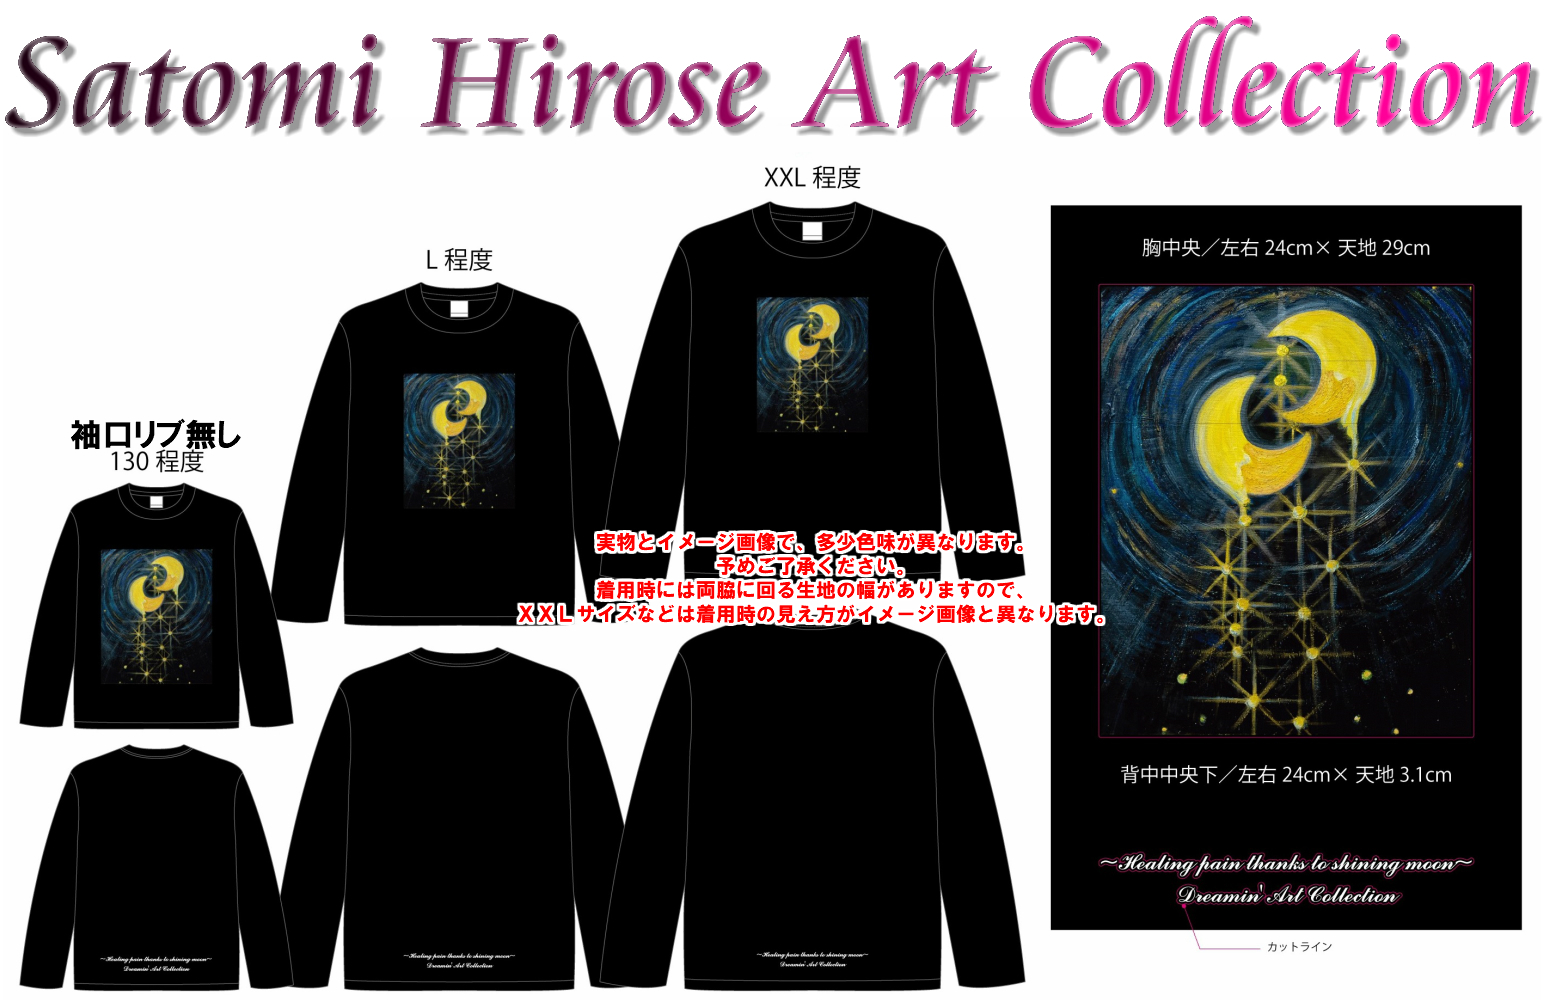 ロングアートTシャツ ~Healing pain thanks to shining moon~